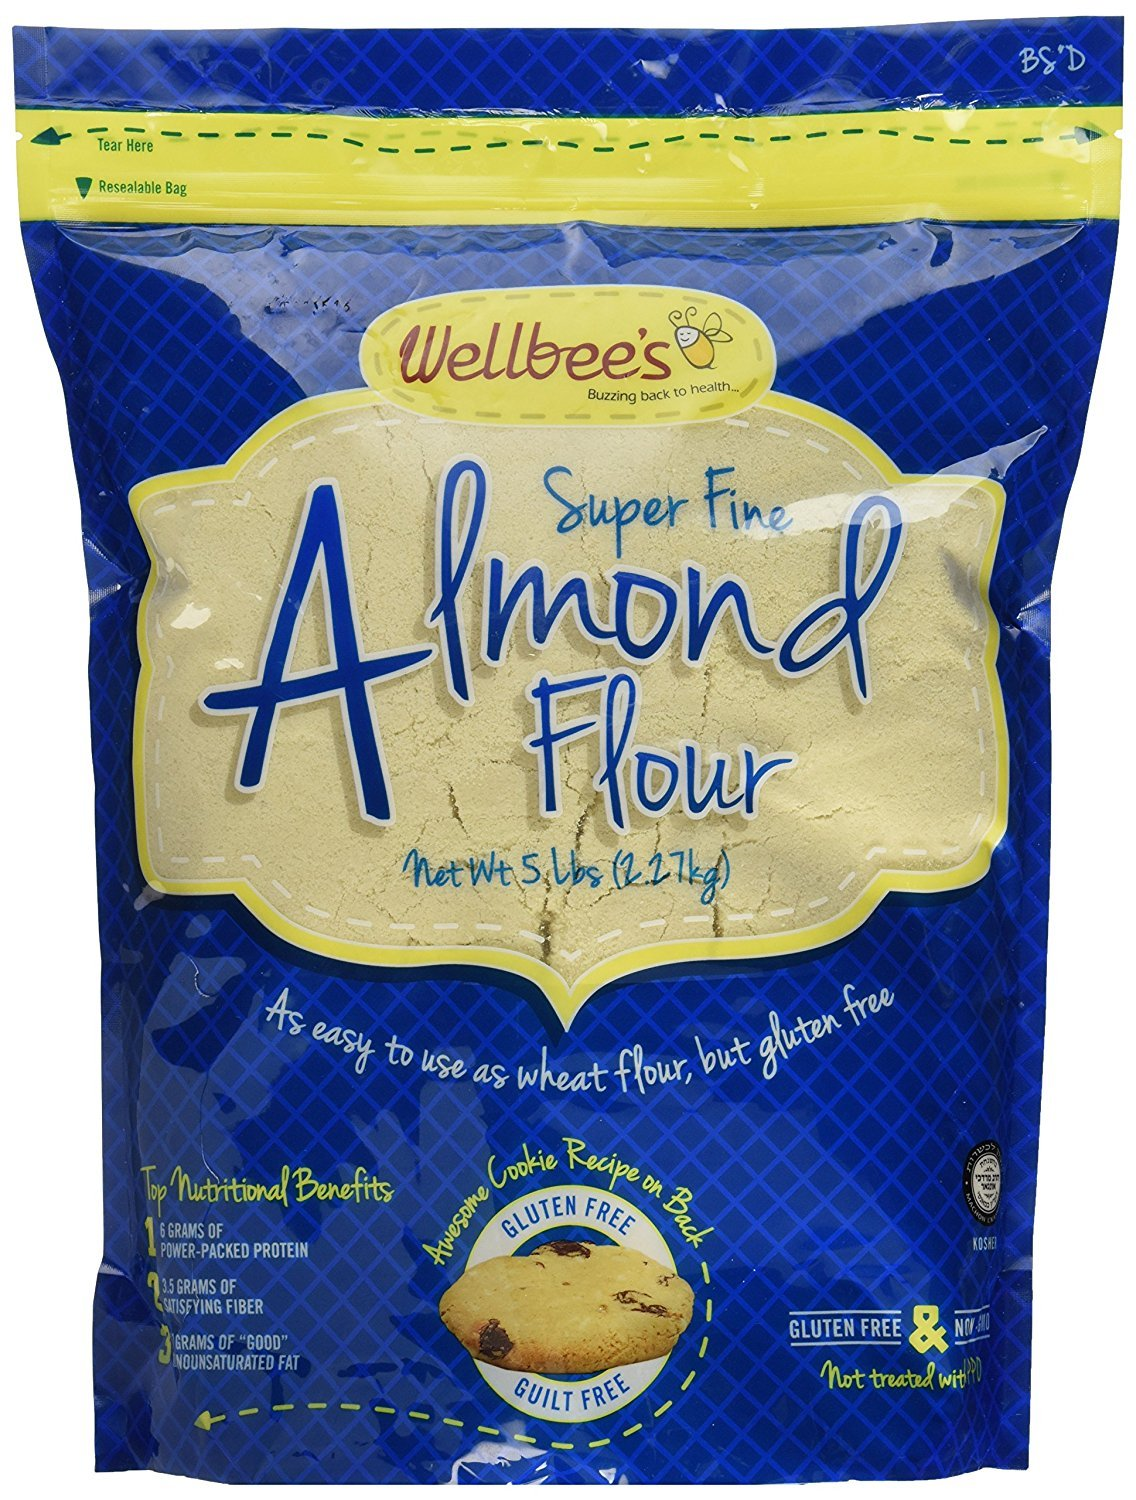 Wellbee's Super Fine Blanched Almond Flour / Powder 5 Pound by Wellbee's